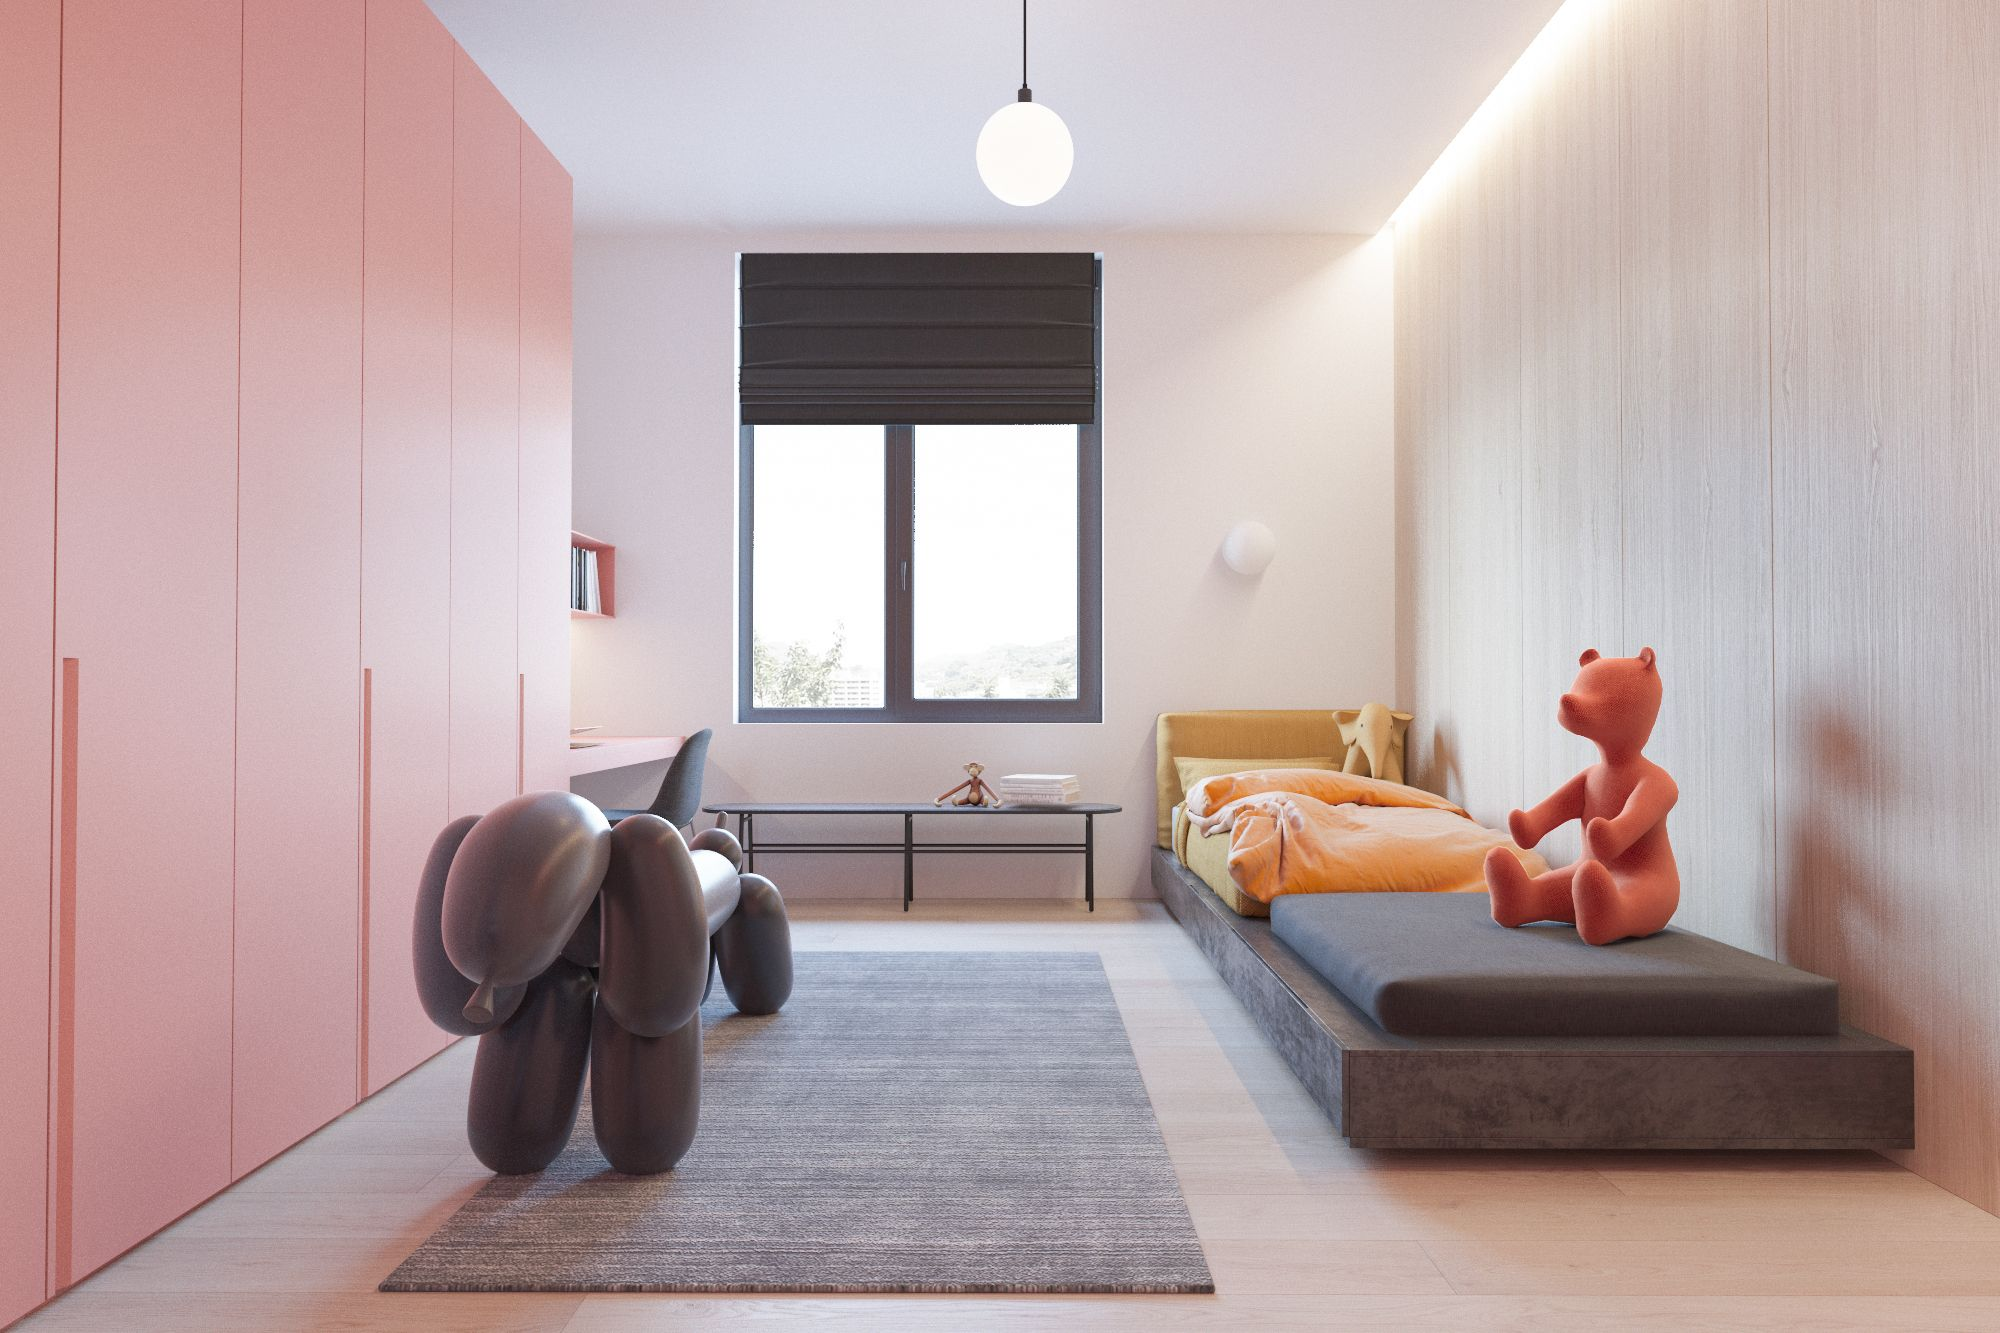 - Floor to ceiling wardrobes - Colour scheme - Long bed with seating - Wooden floors - Simple neutral carpet - Light rails - Floating bed box